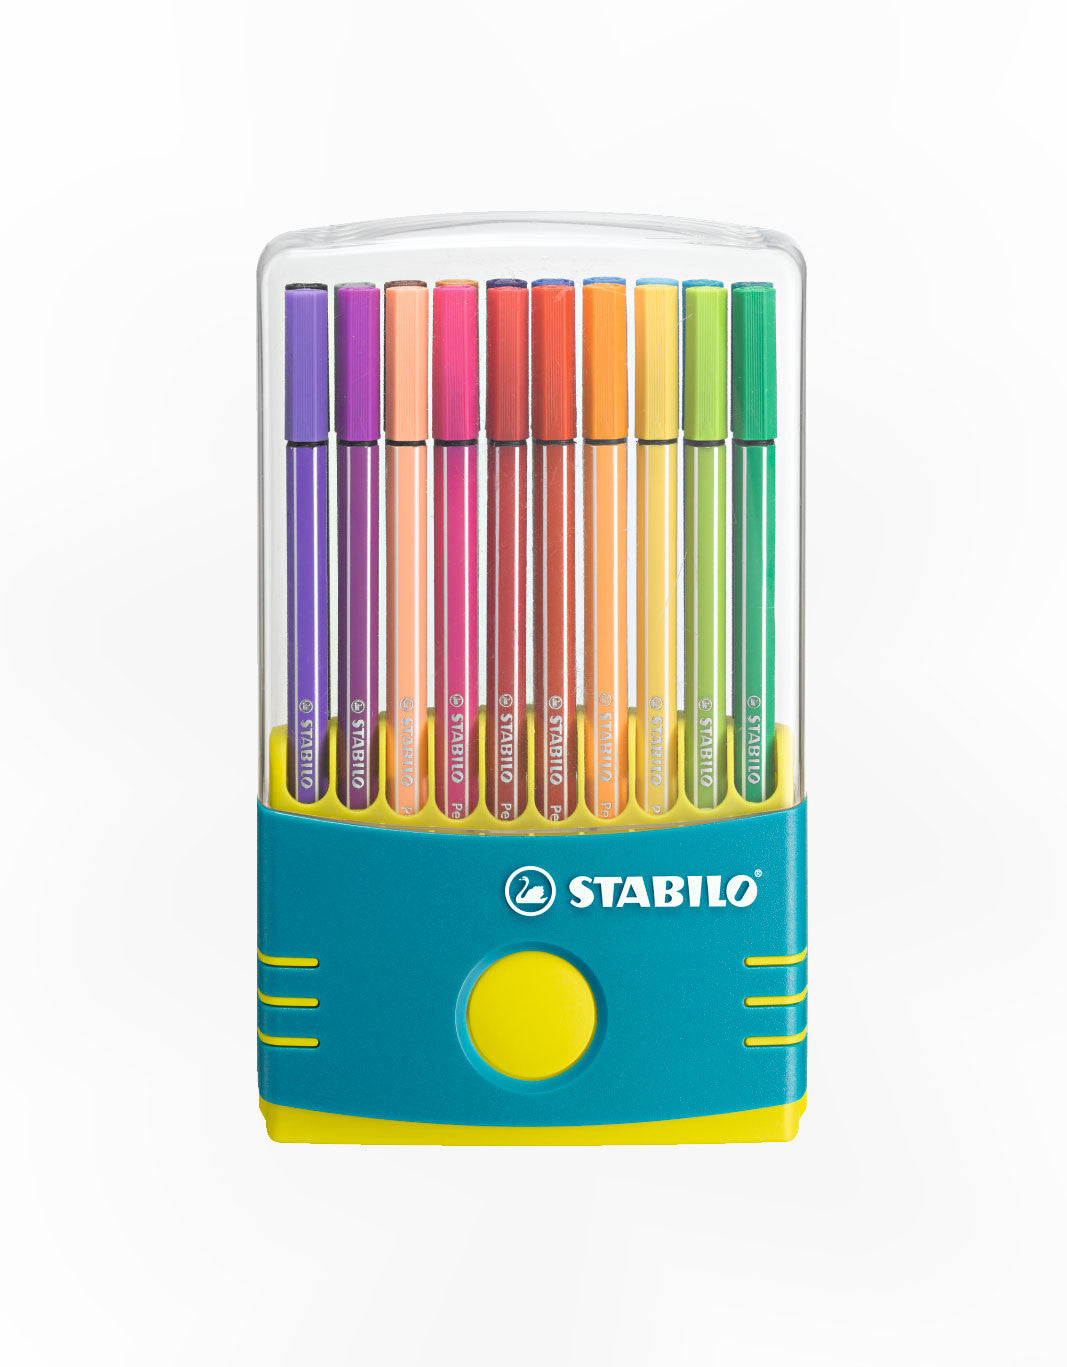 STABILO Pen 68 - Color Parade set of 20